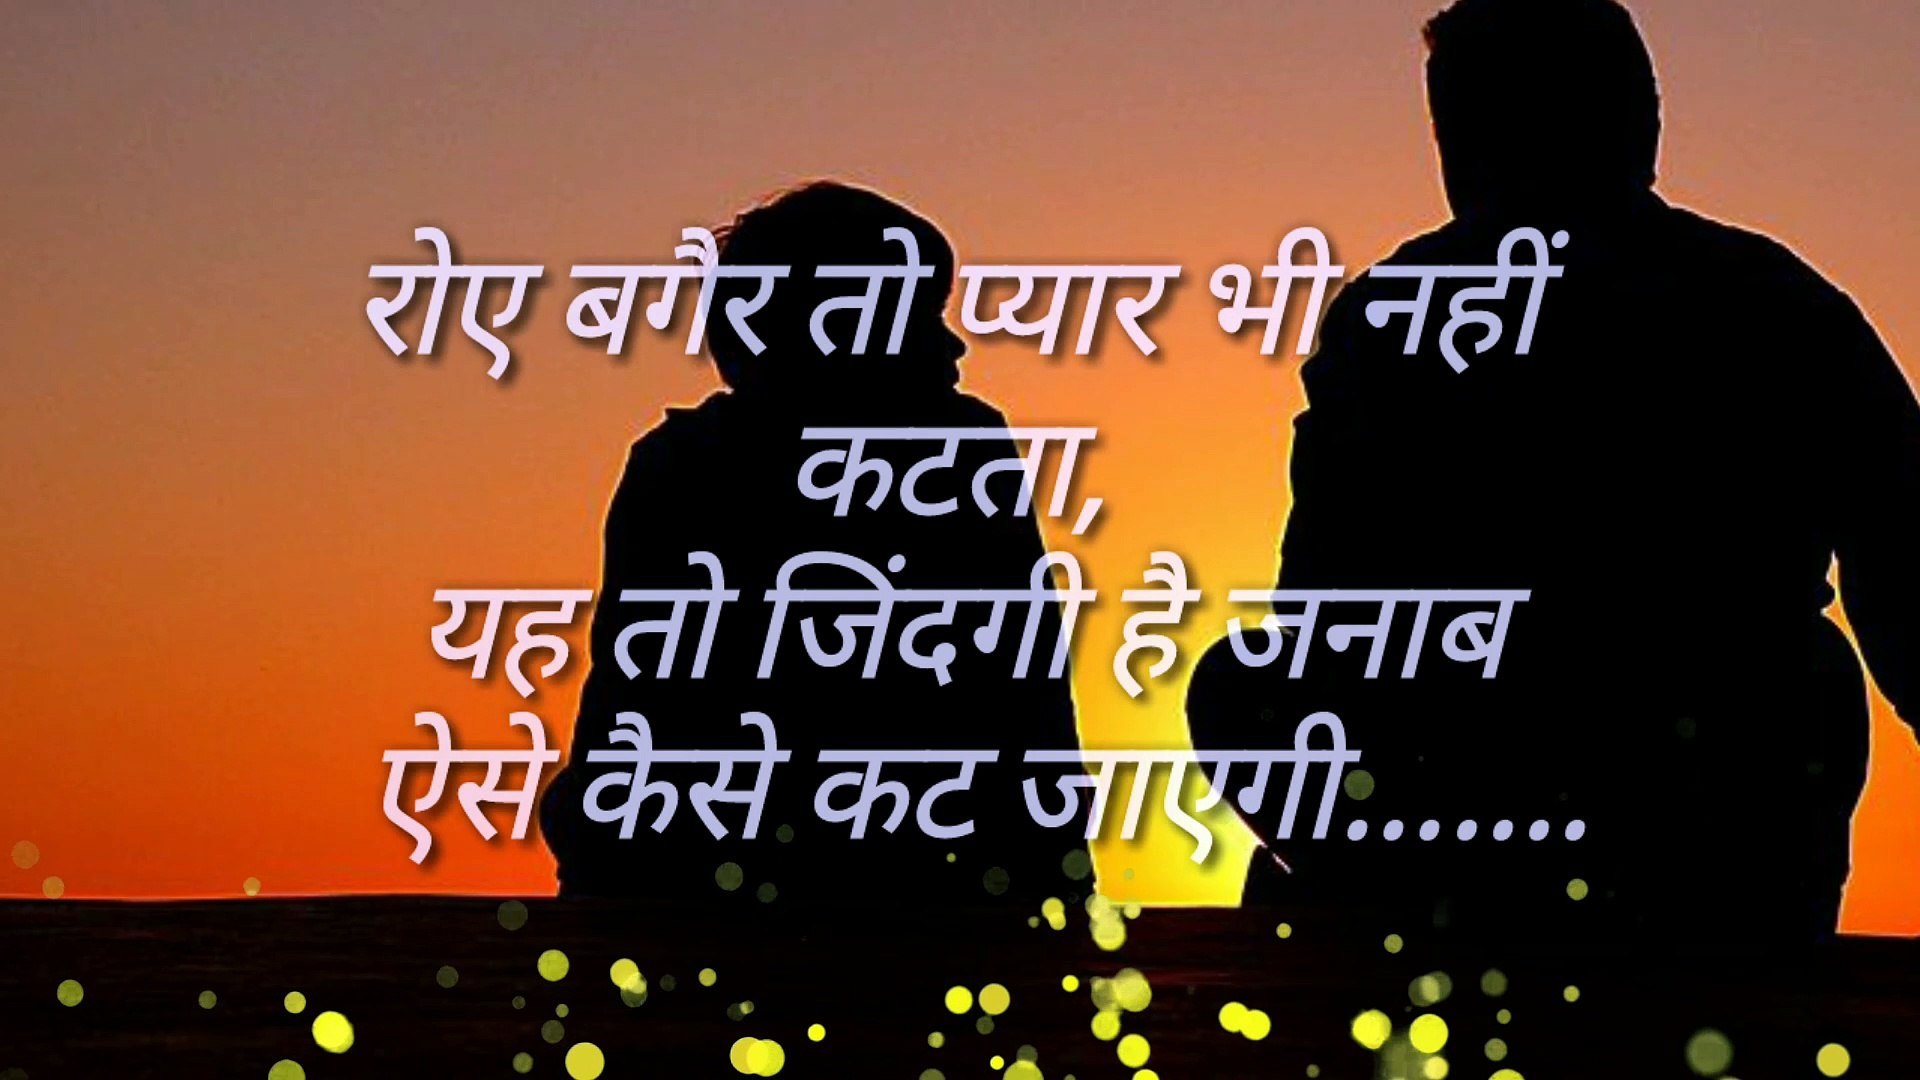 Best motivational quotes in hindi || motivational video | inspirational video |Part 3 | powerful mot